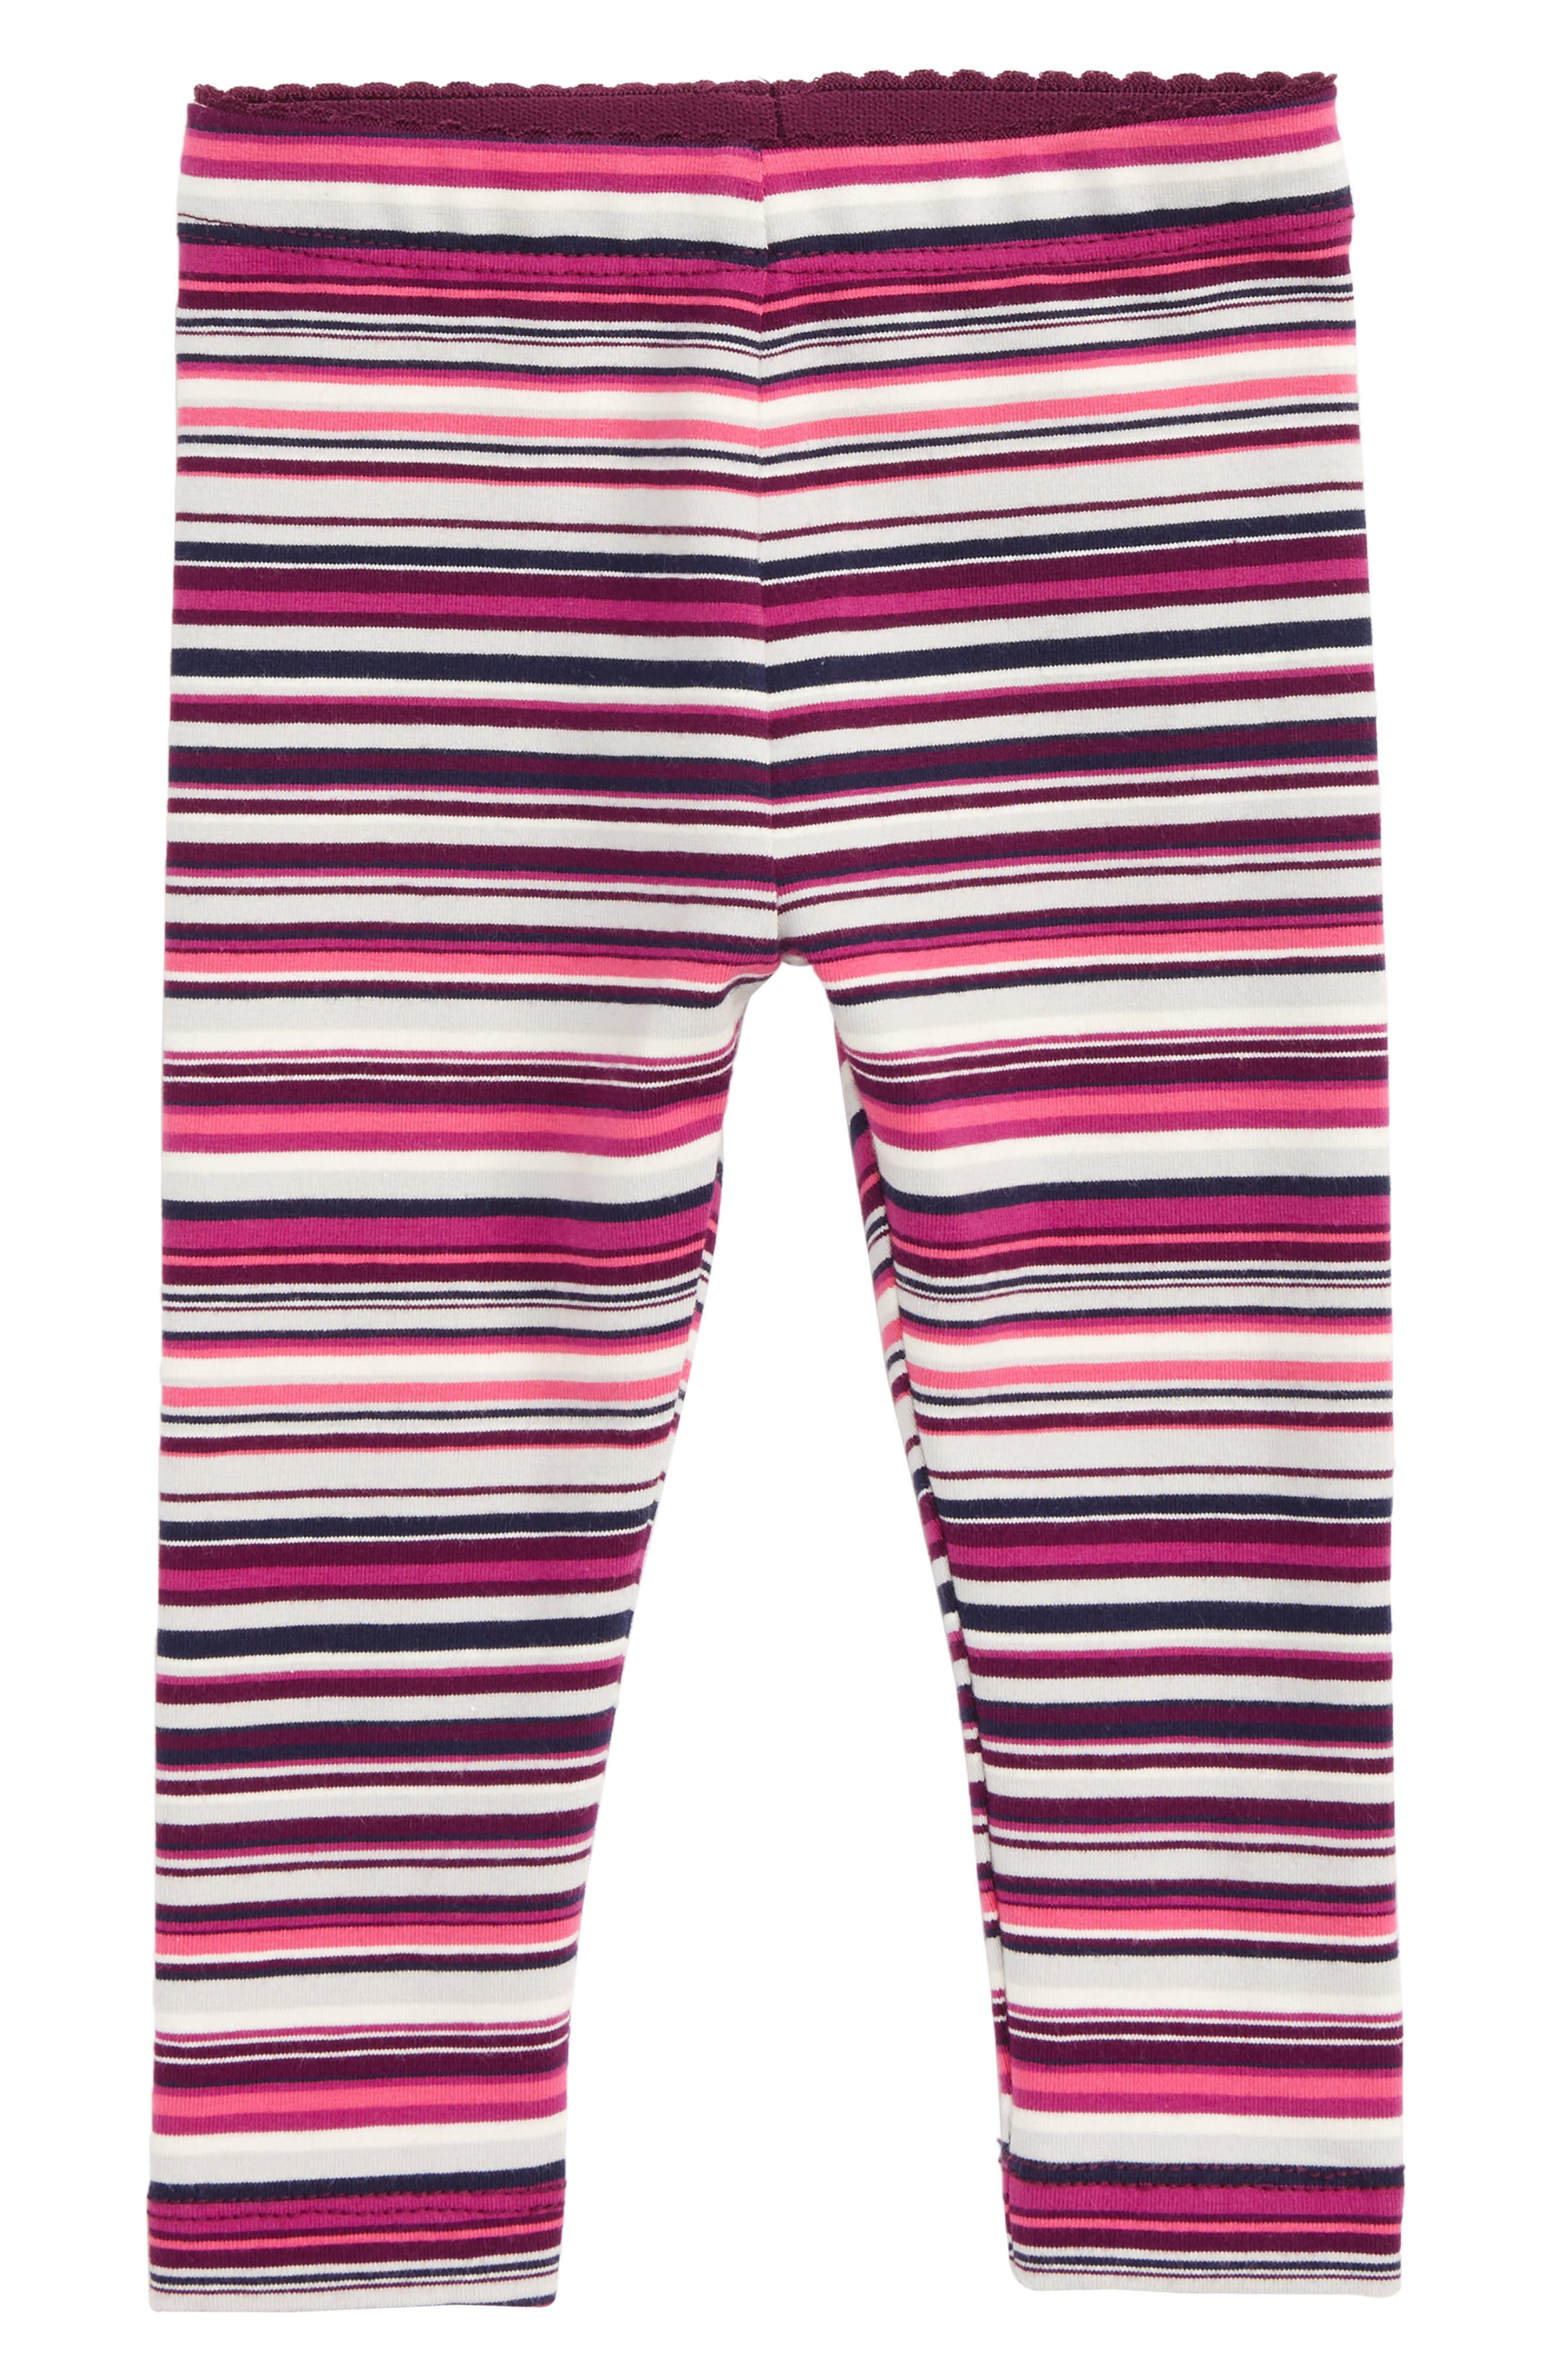 Alternate Image 1 Selected - Tea Collection Stripe Leggings (Baby Girls)